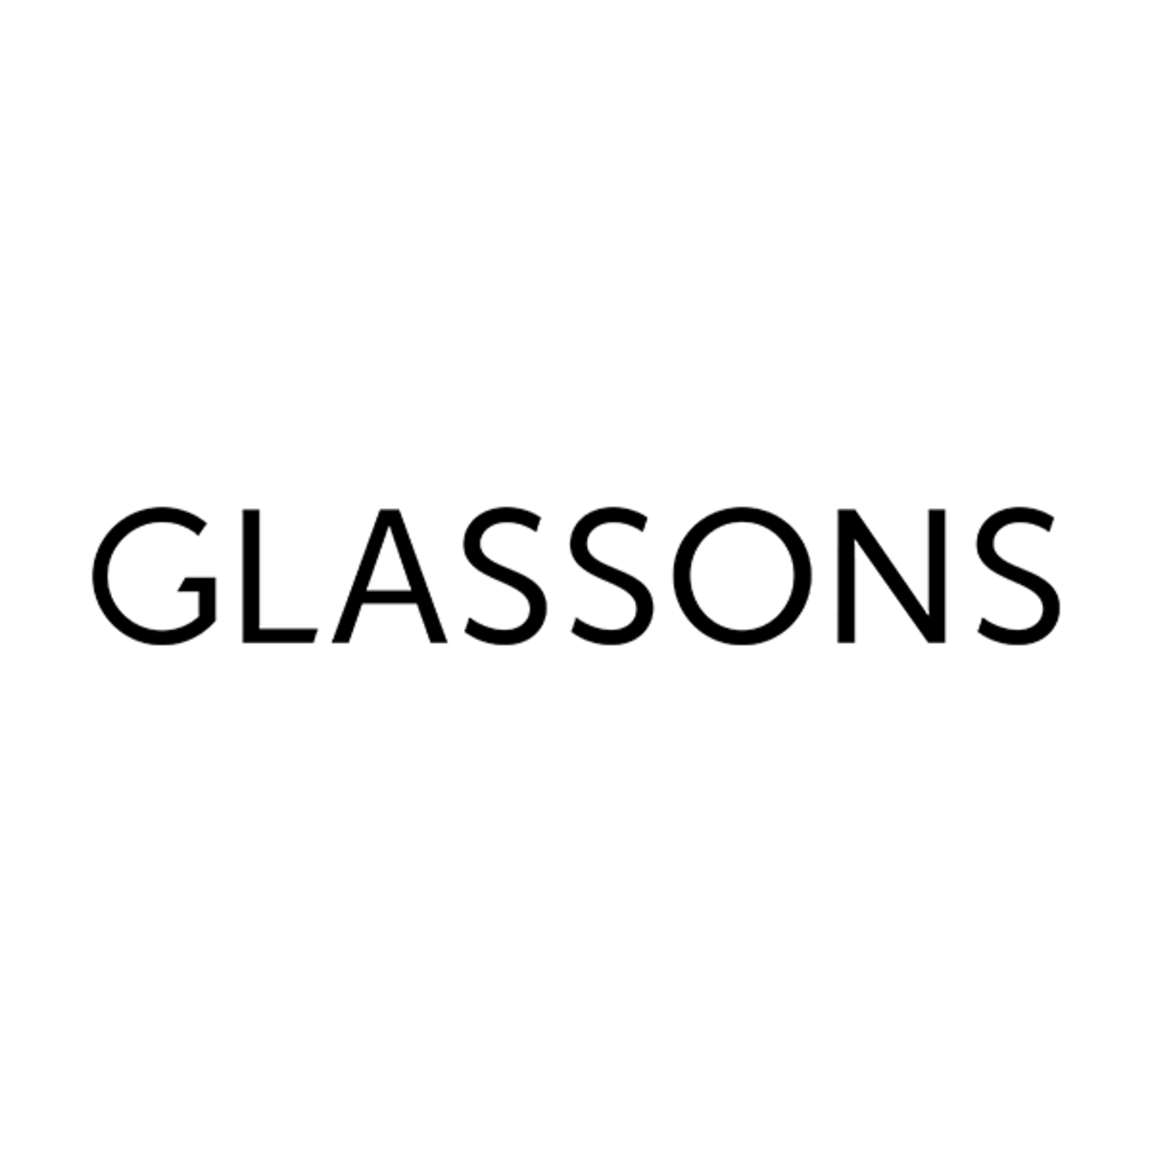 GLASSONS REVIEW 2021 – Your Legit All Year Round Store!